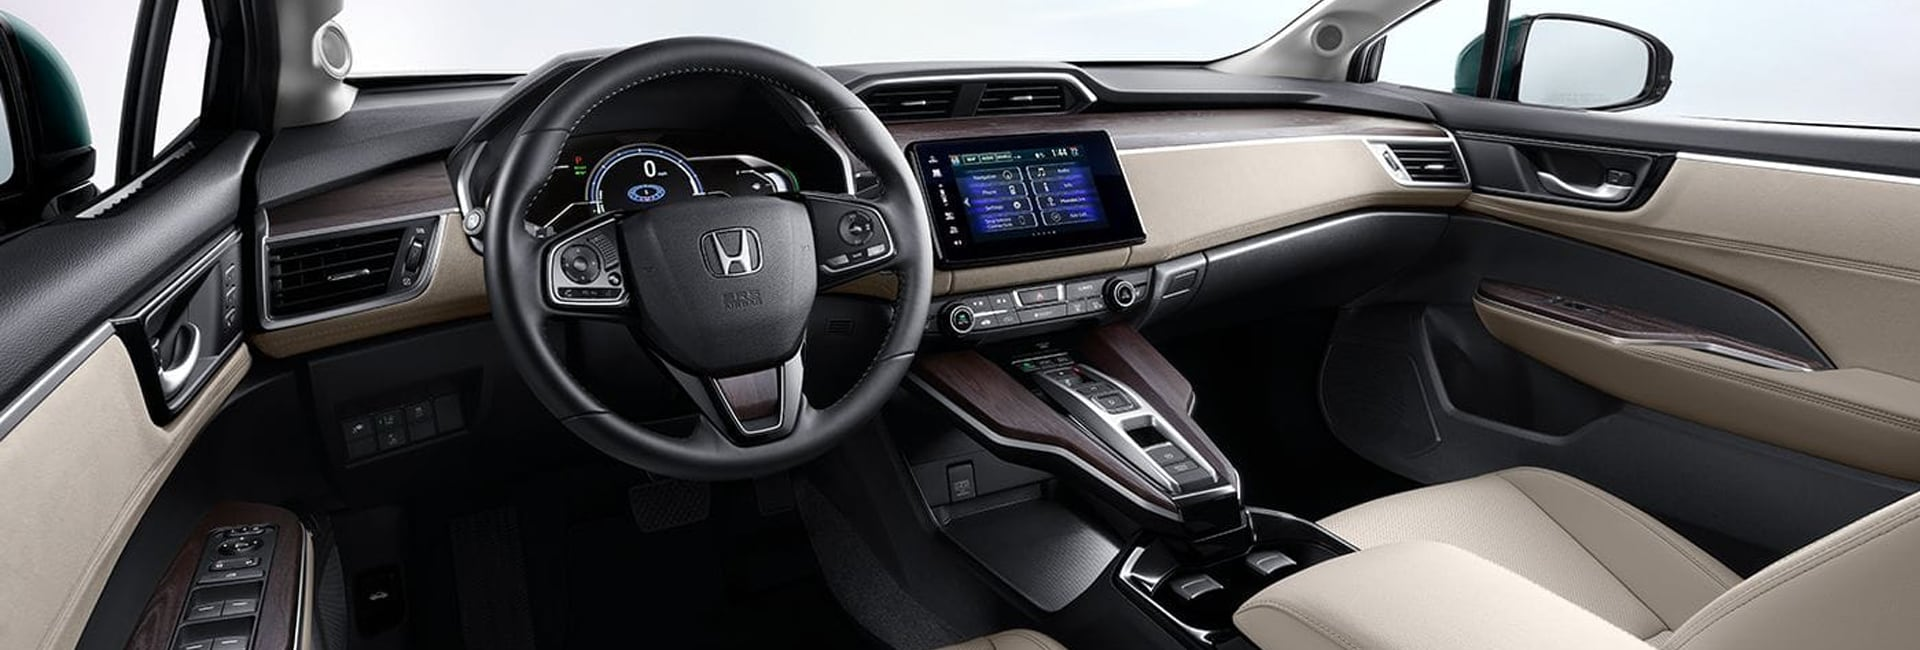 Honda Clarity Plug-In Hybrid Interior Front